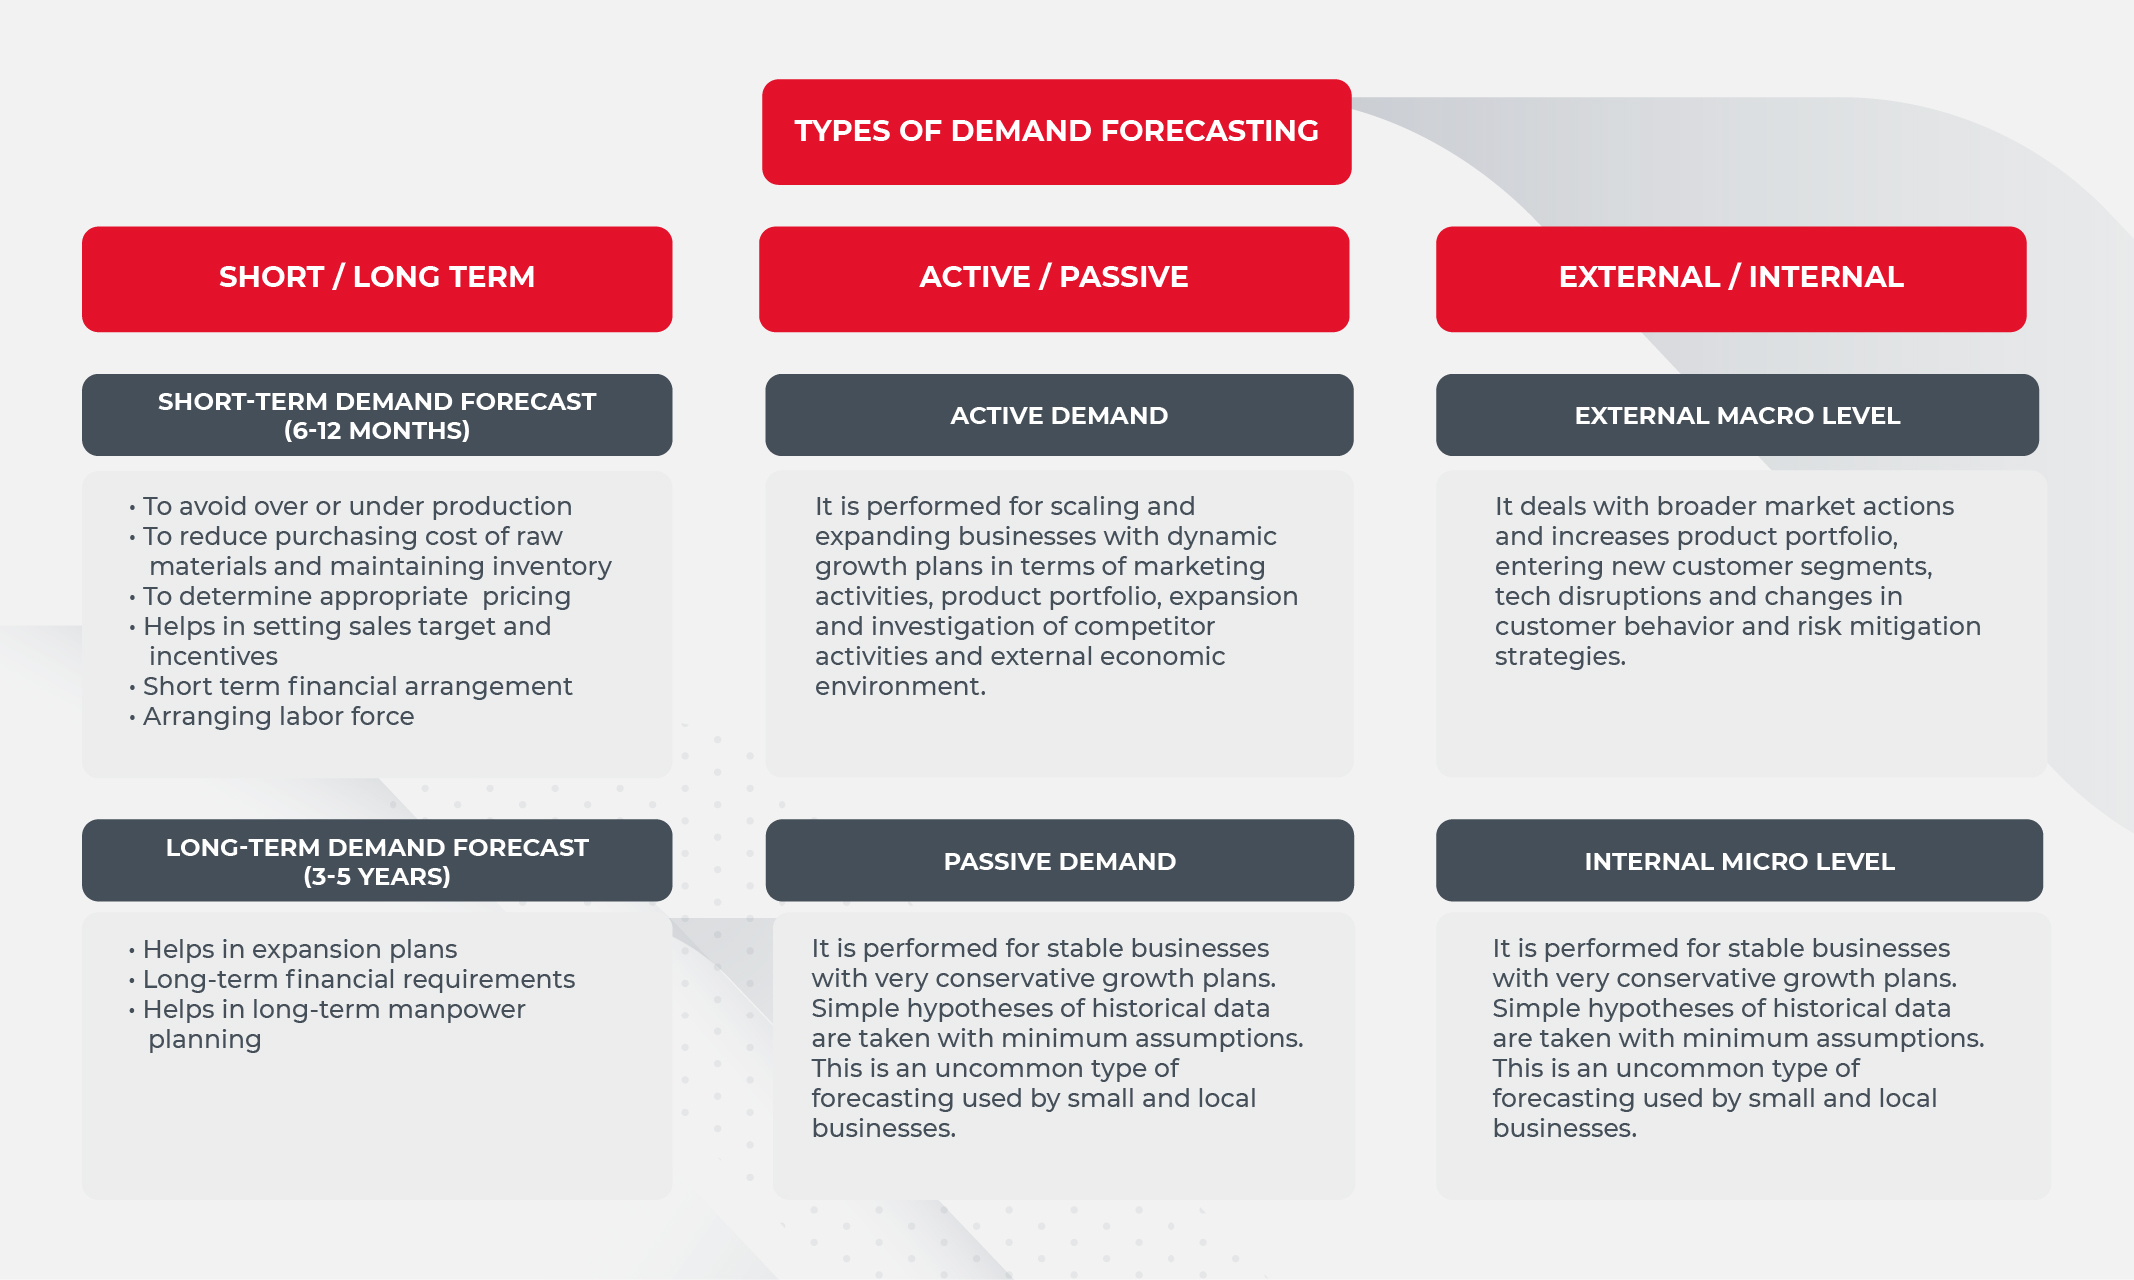 Types of demand forecasting